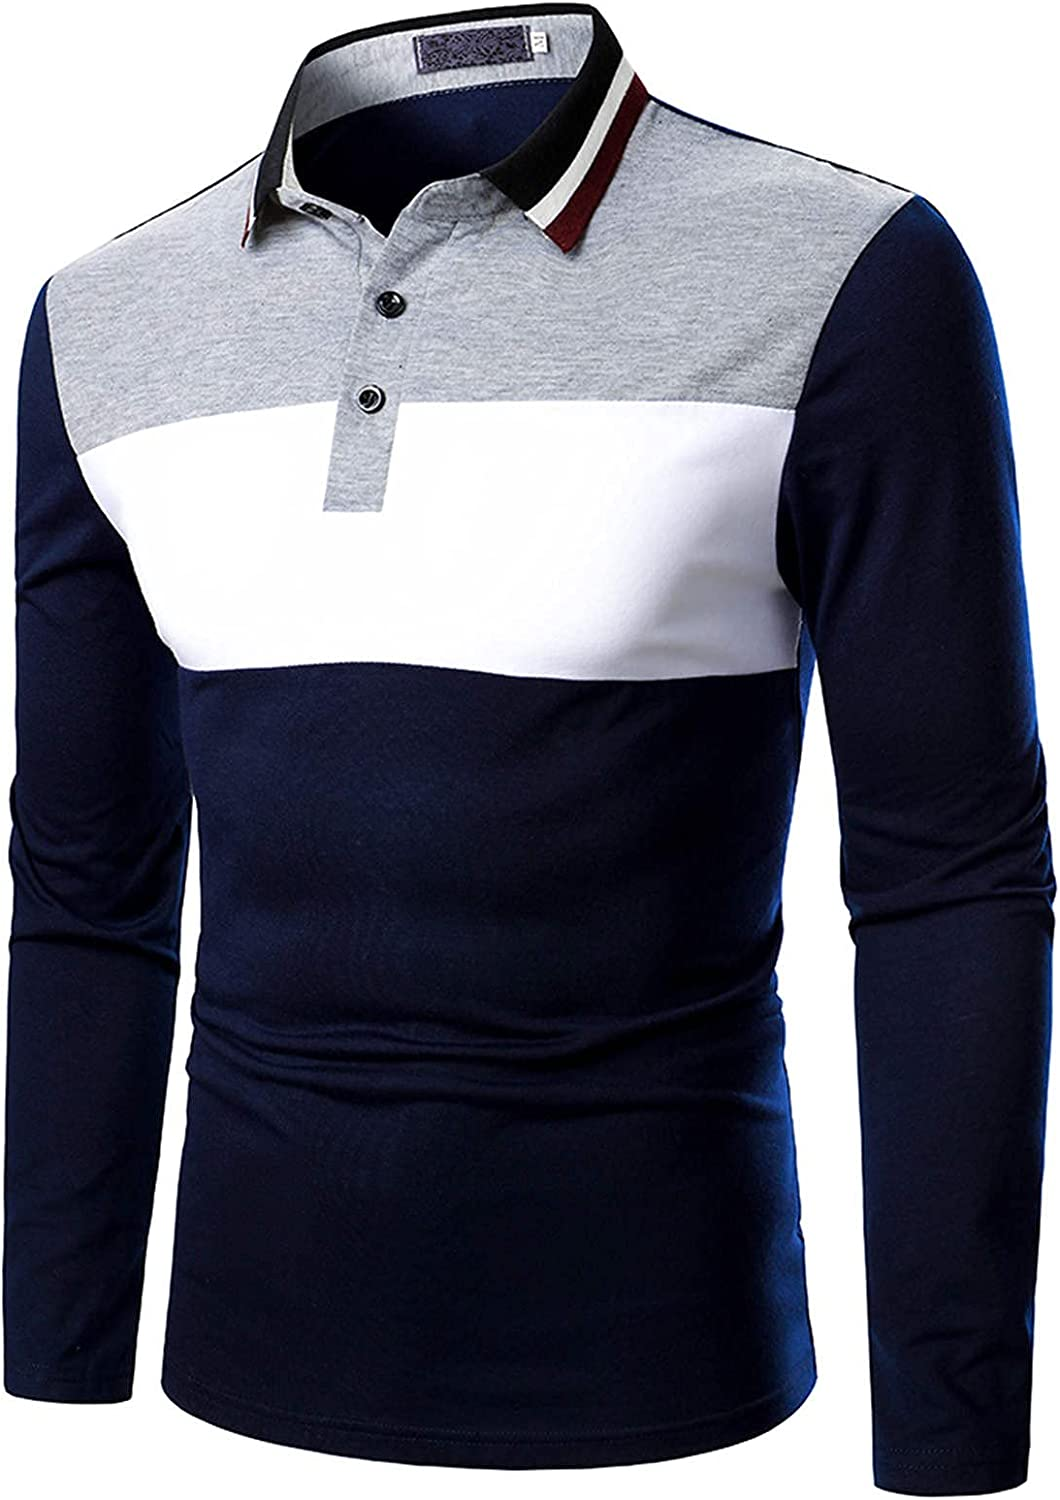 XXBR Long Sleeve Polo Shirts for Mens, 2021 Fall Color Block Patchwork Business Casual Shirt Front Placket Button Tops